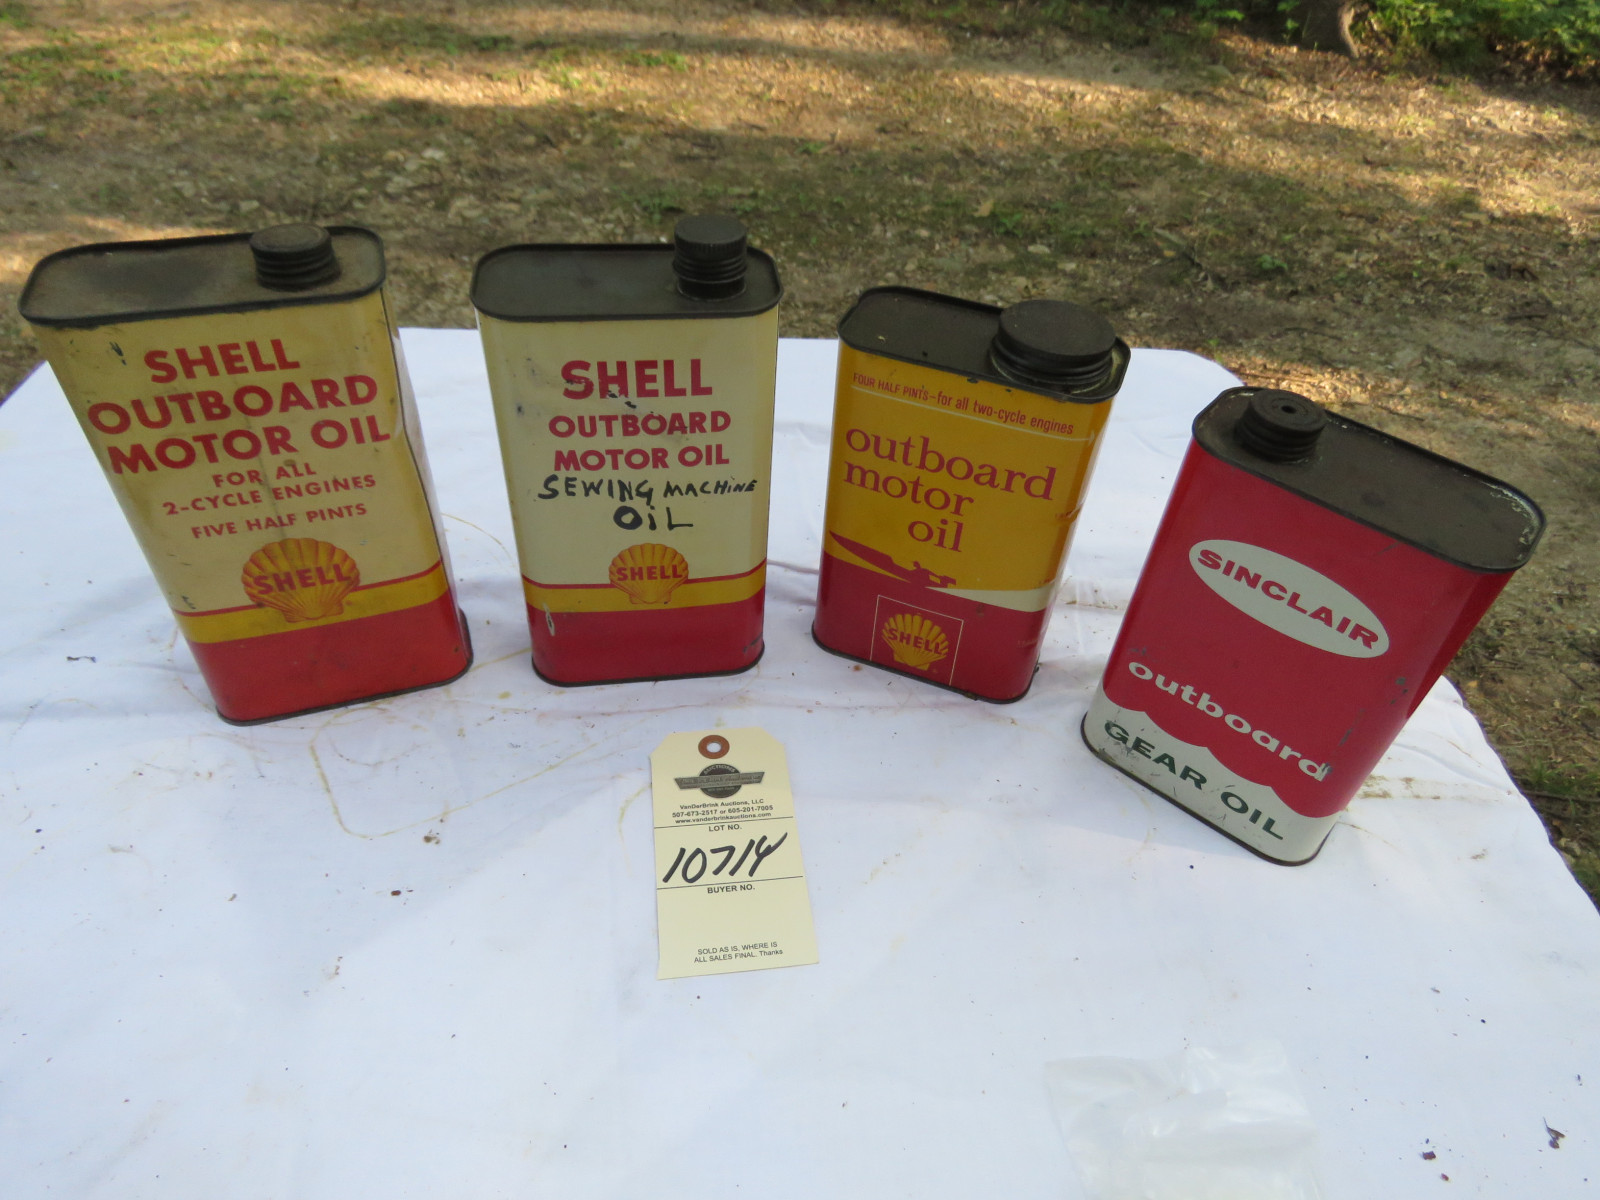 Vintage Motor Oil Can Grouping - Image 1